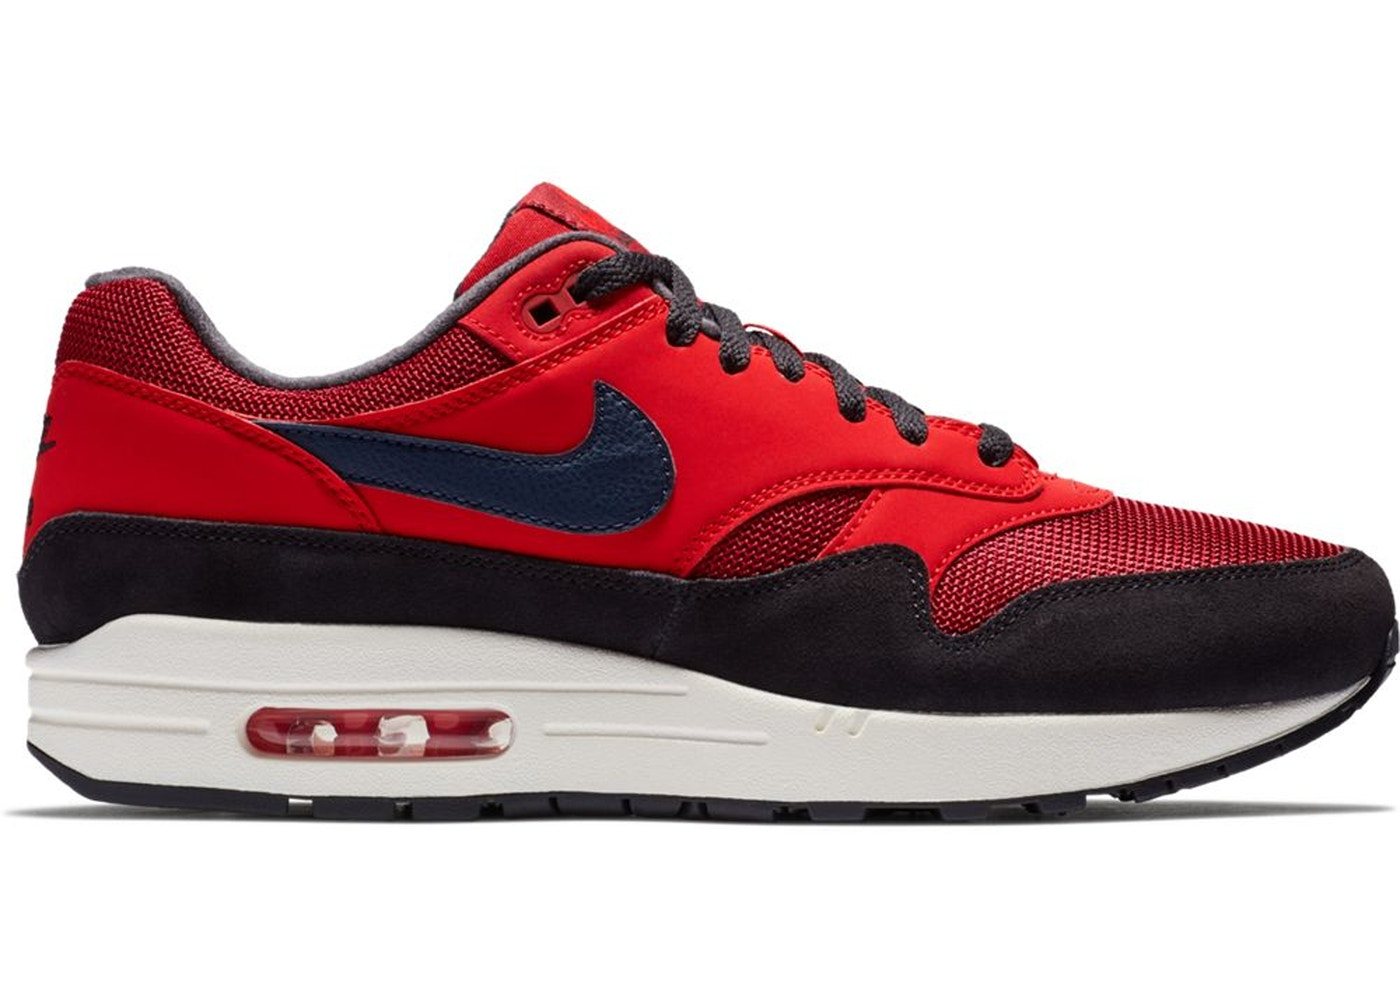 a408c7e8 Sell. or Ask. Size: 11.5. View All Bids. Air Max 1 Red Crush